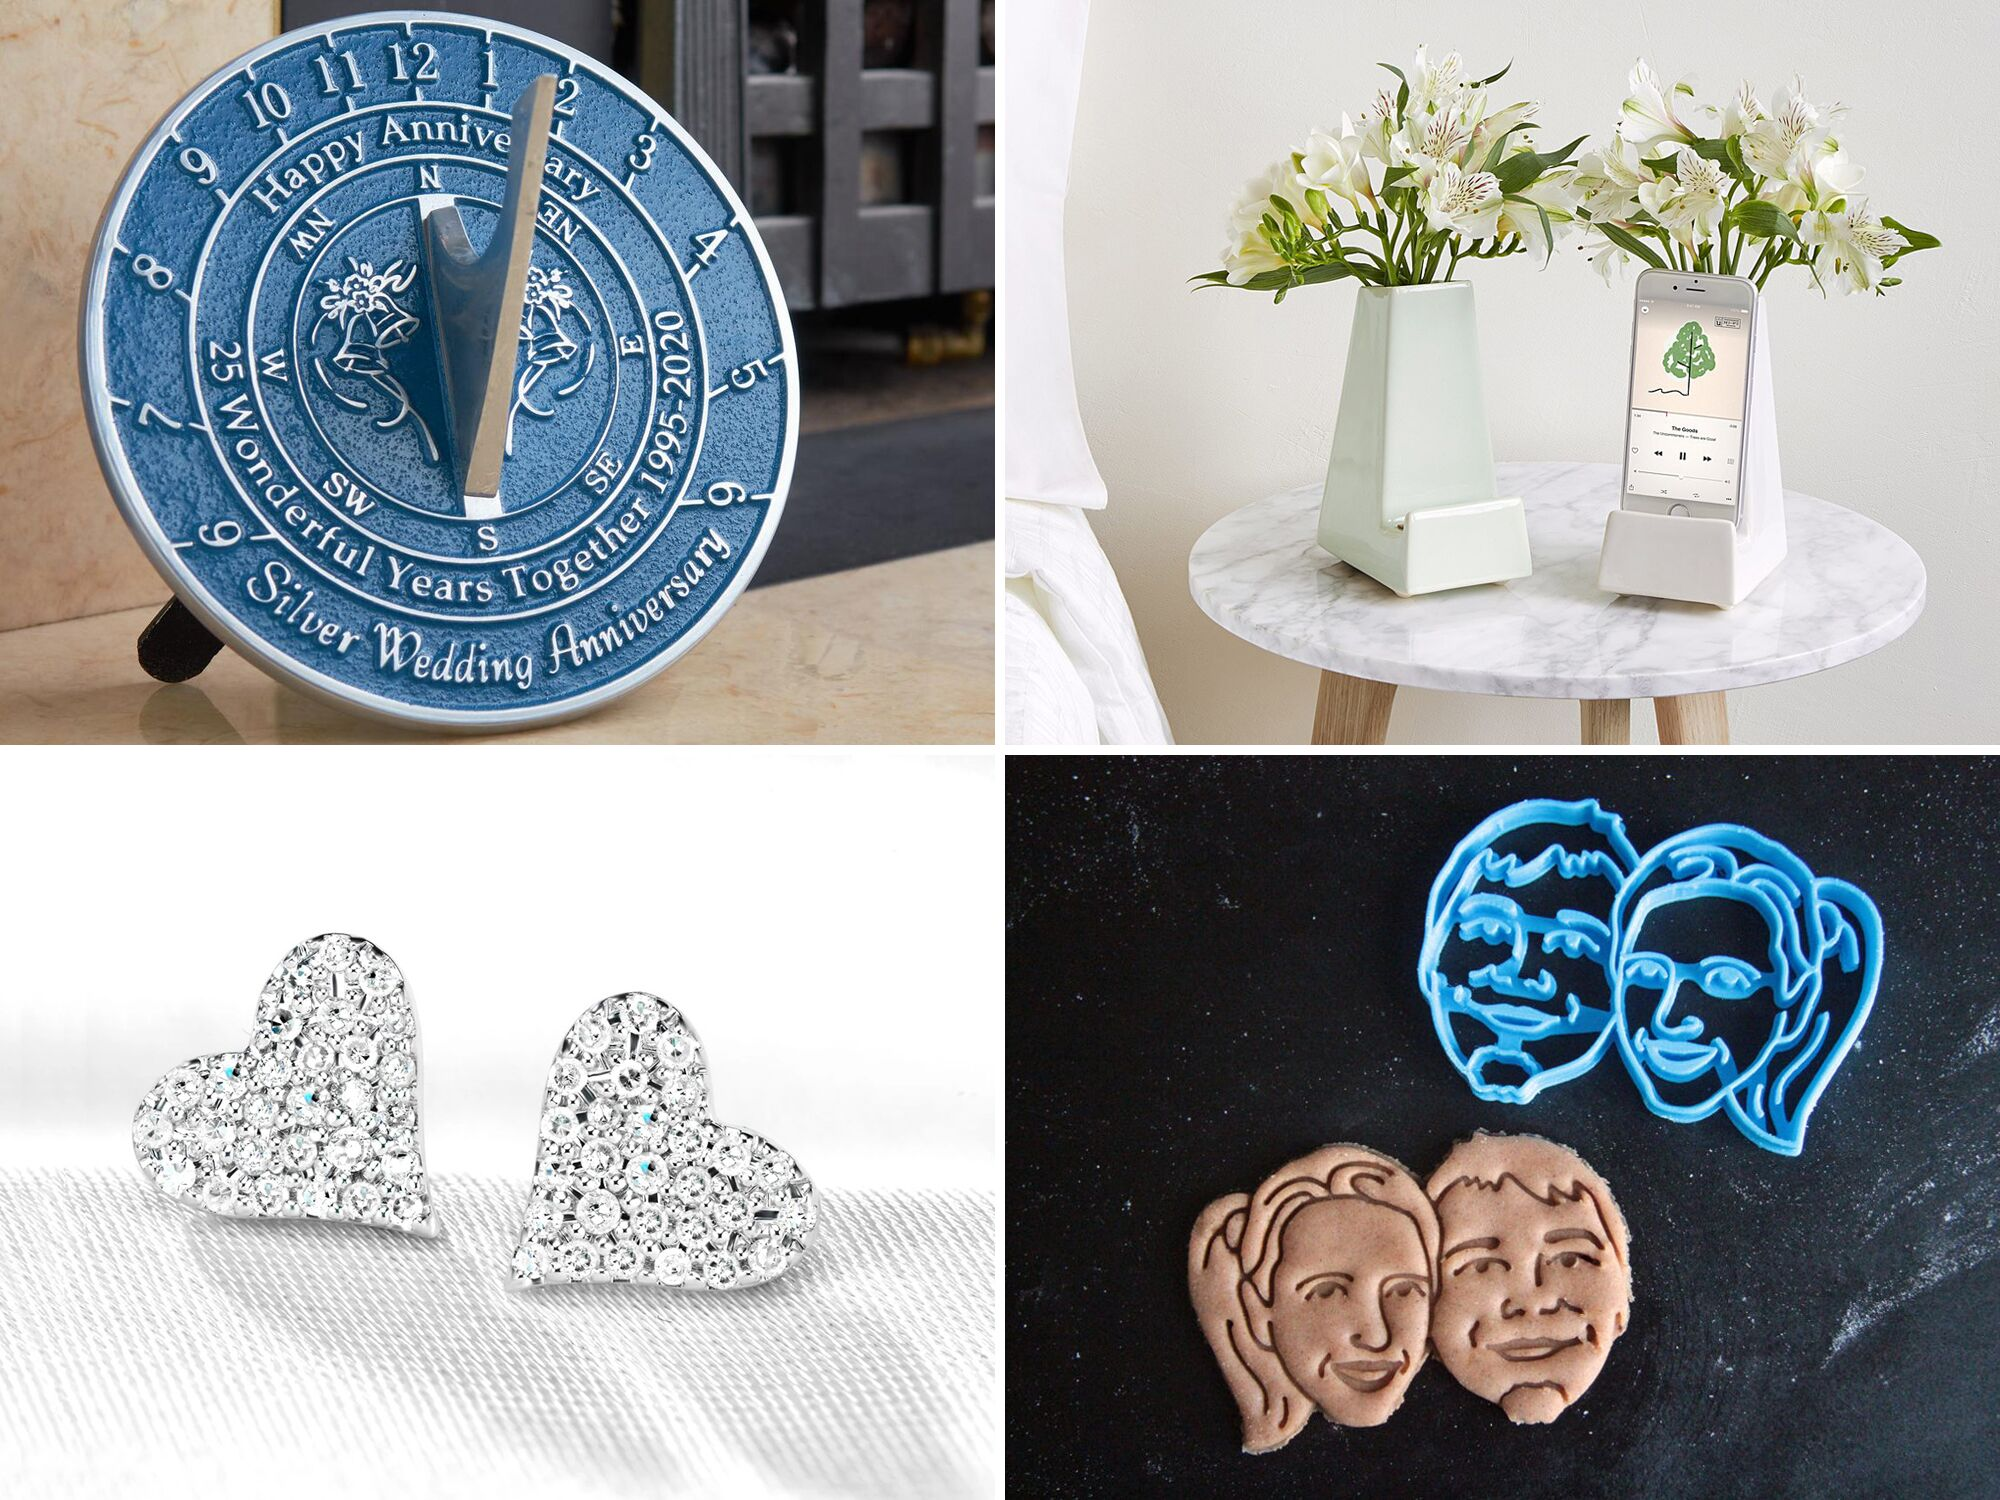 The Top 25th Anniversary Gifts For The Silver Jubilee